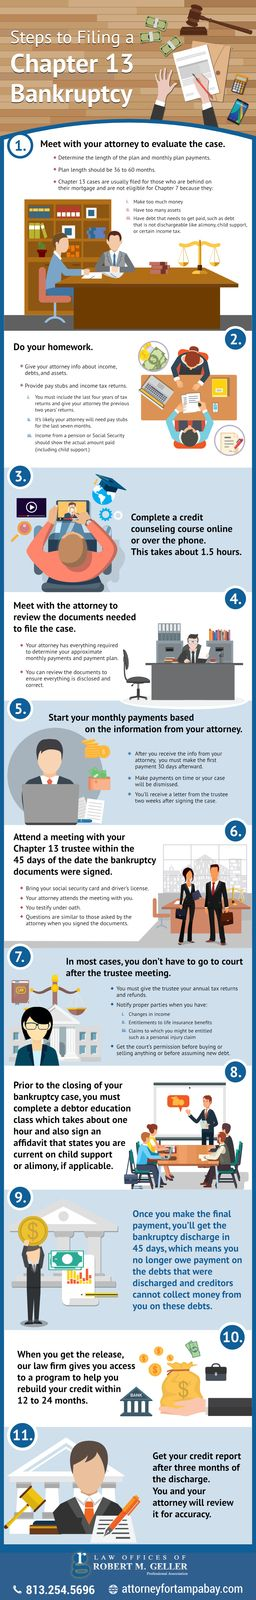 Steps to file Chapter 13 Bankruptcy